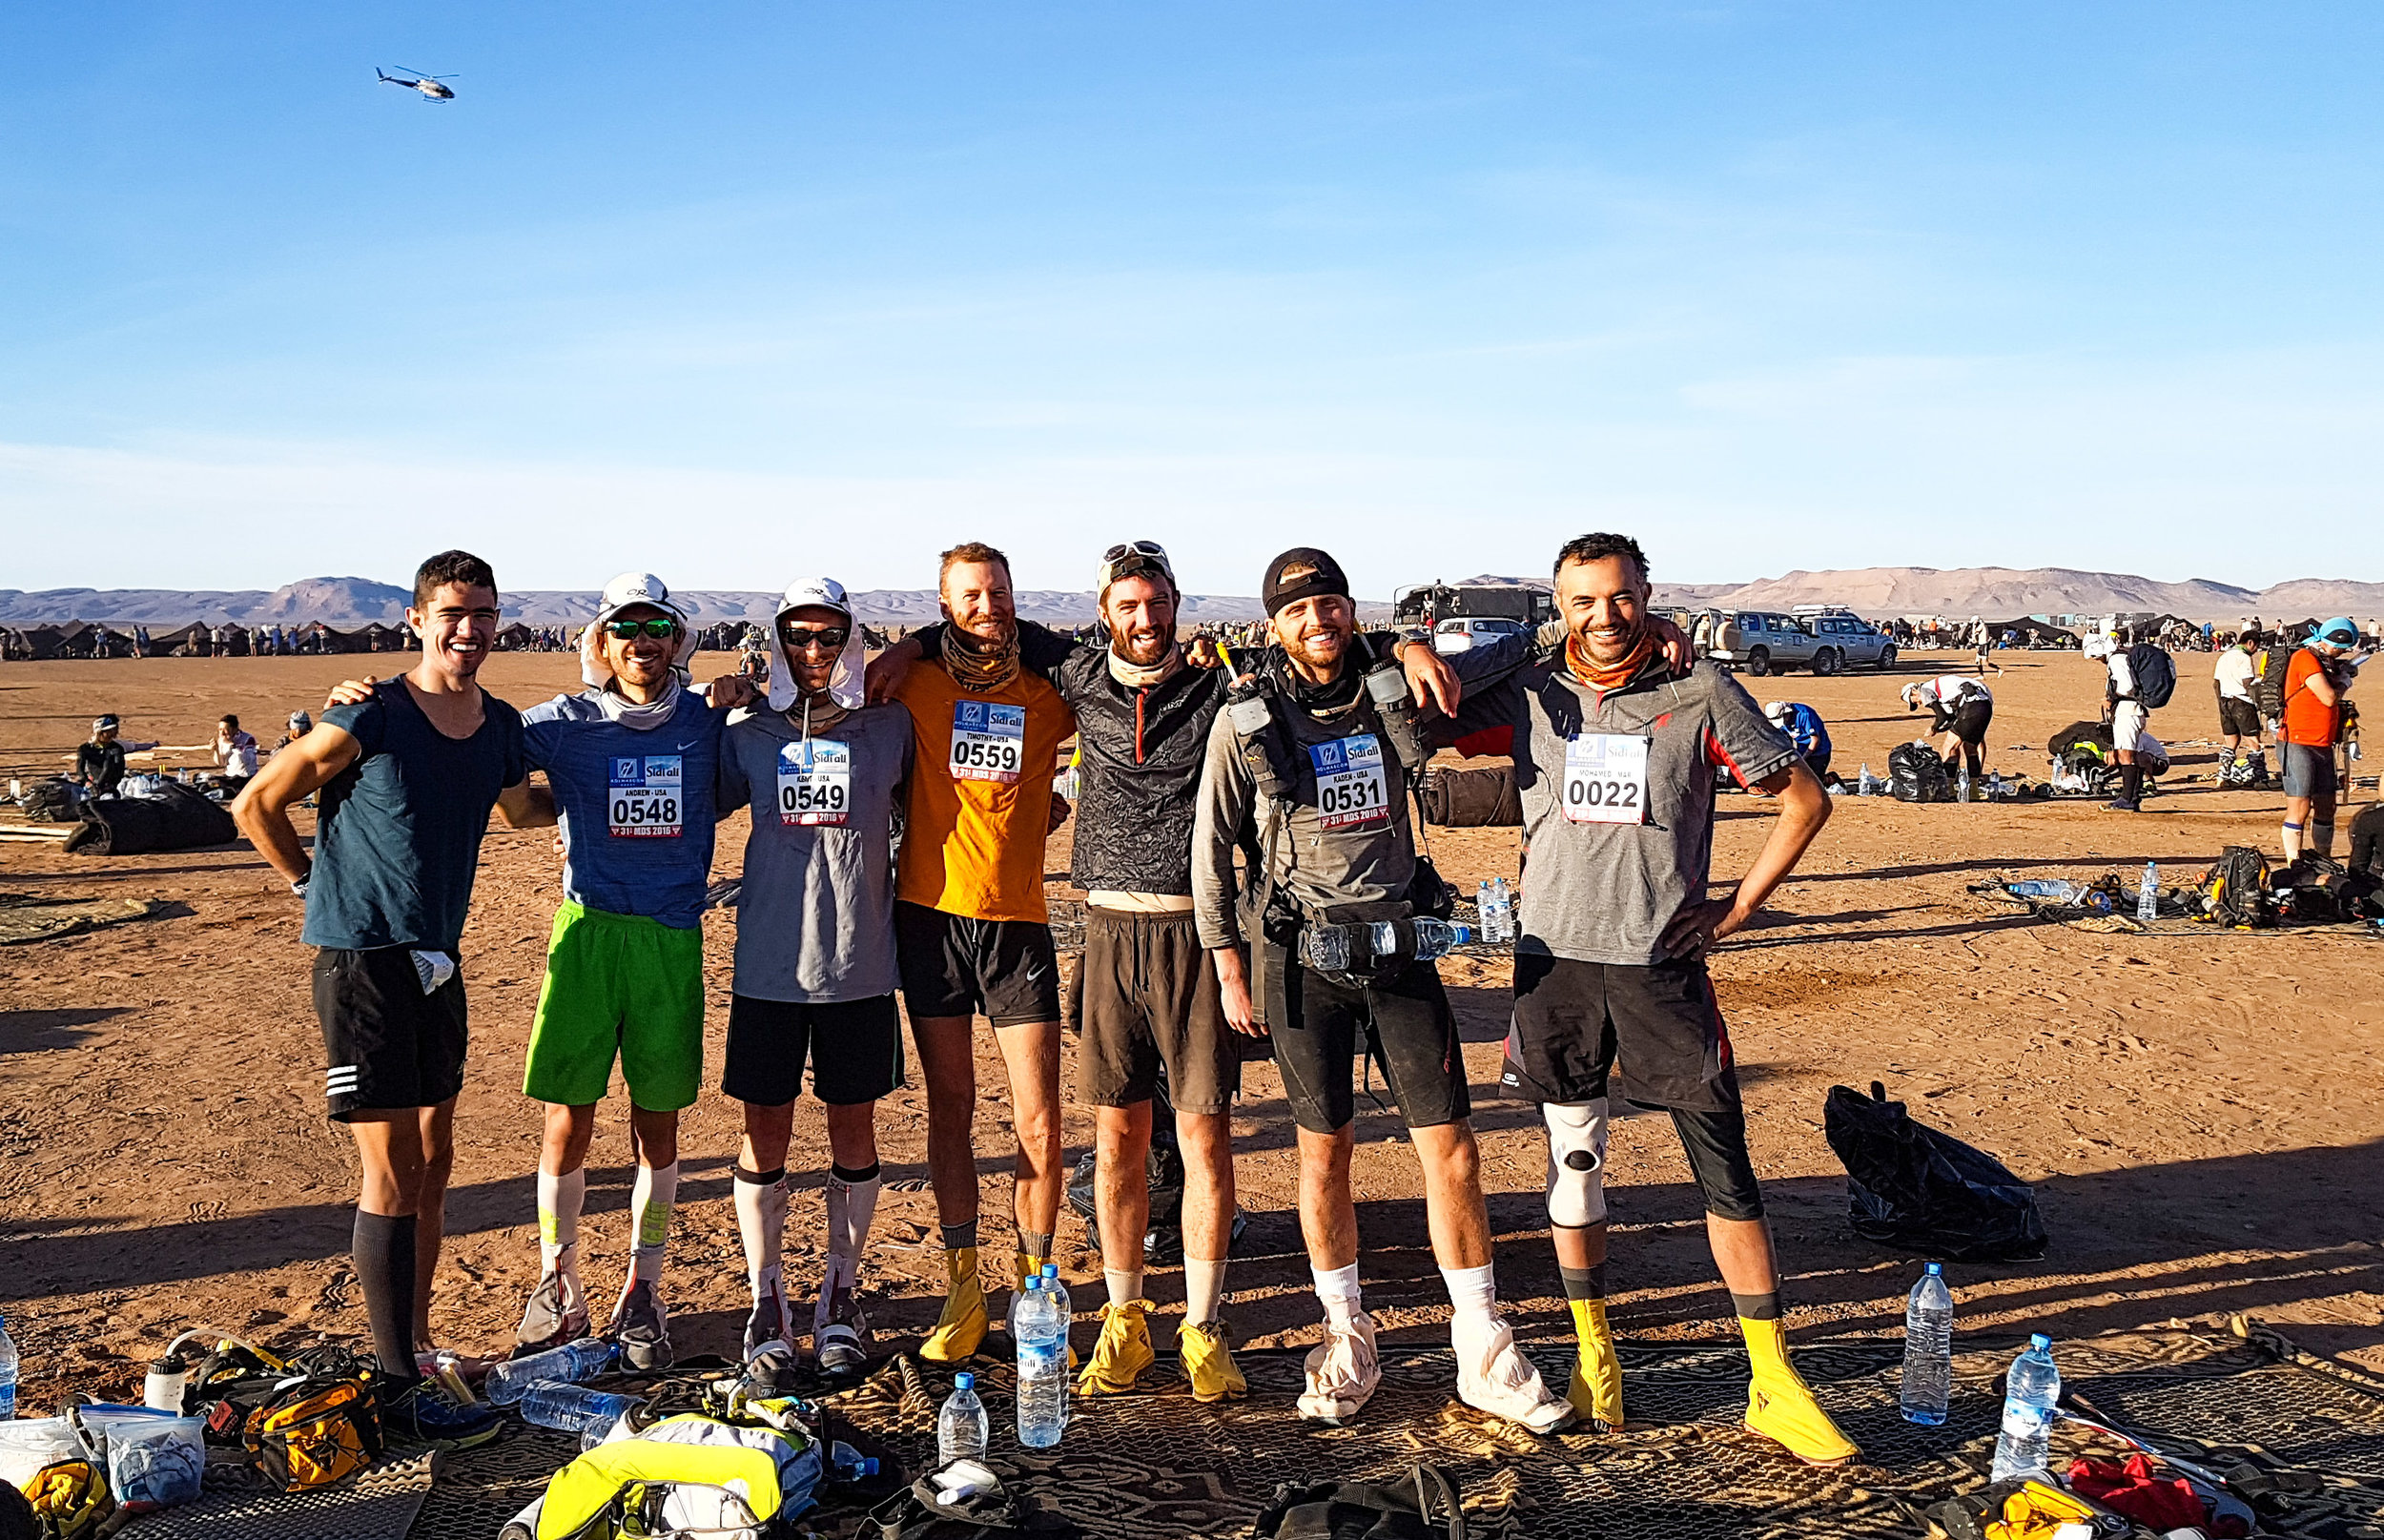 My Tentmates - A great group of guys from all over the world. Also notice the chopper in the background.